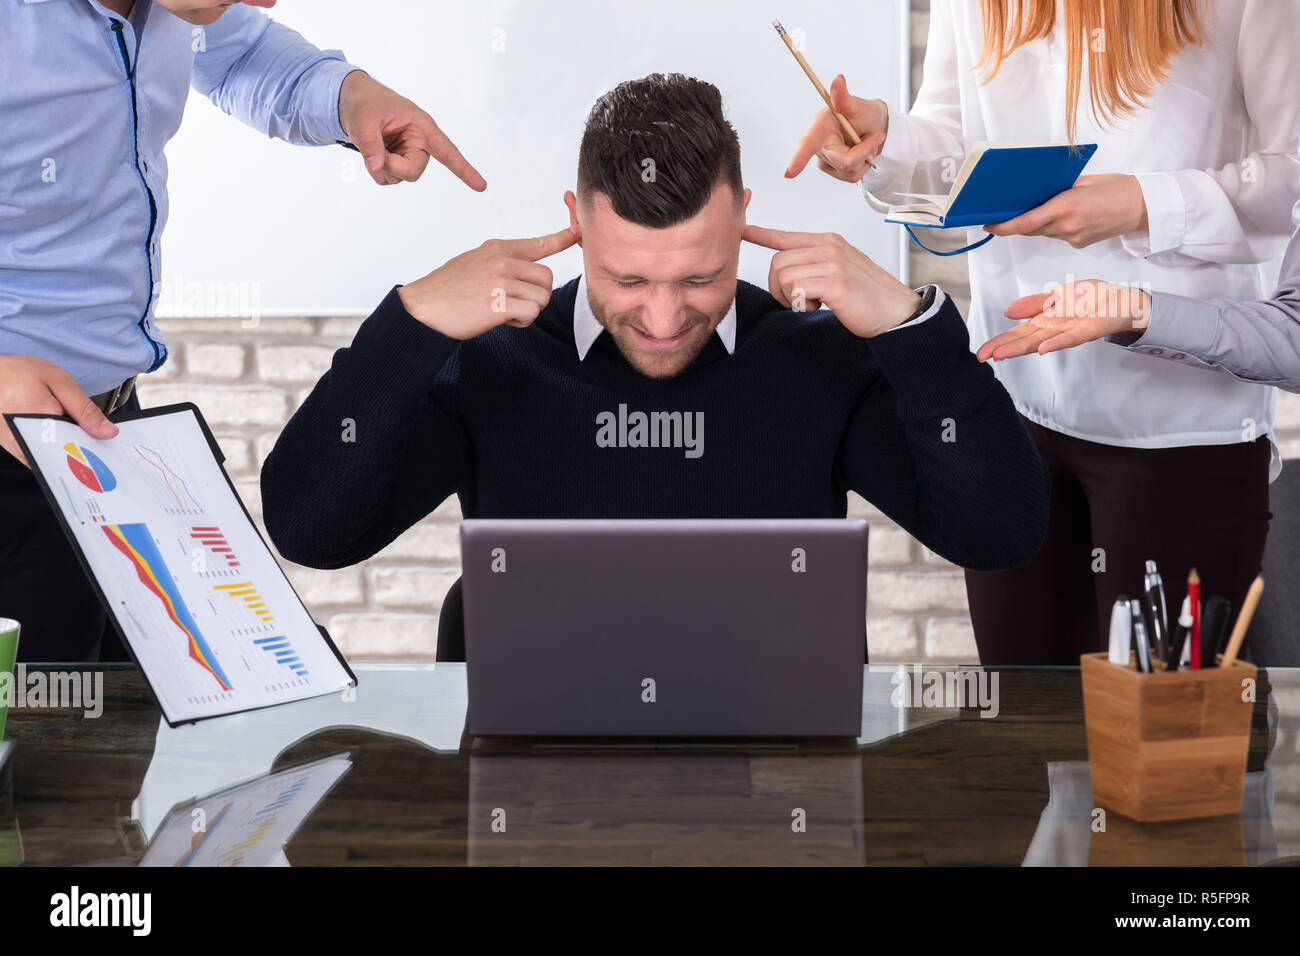 Angry Business People Pointing At Colleague - Stock Image